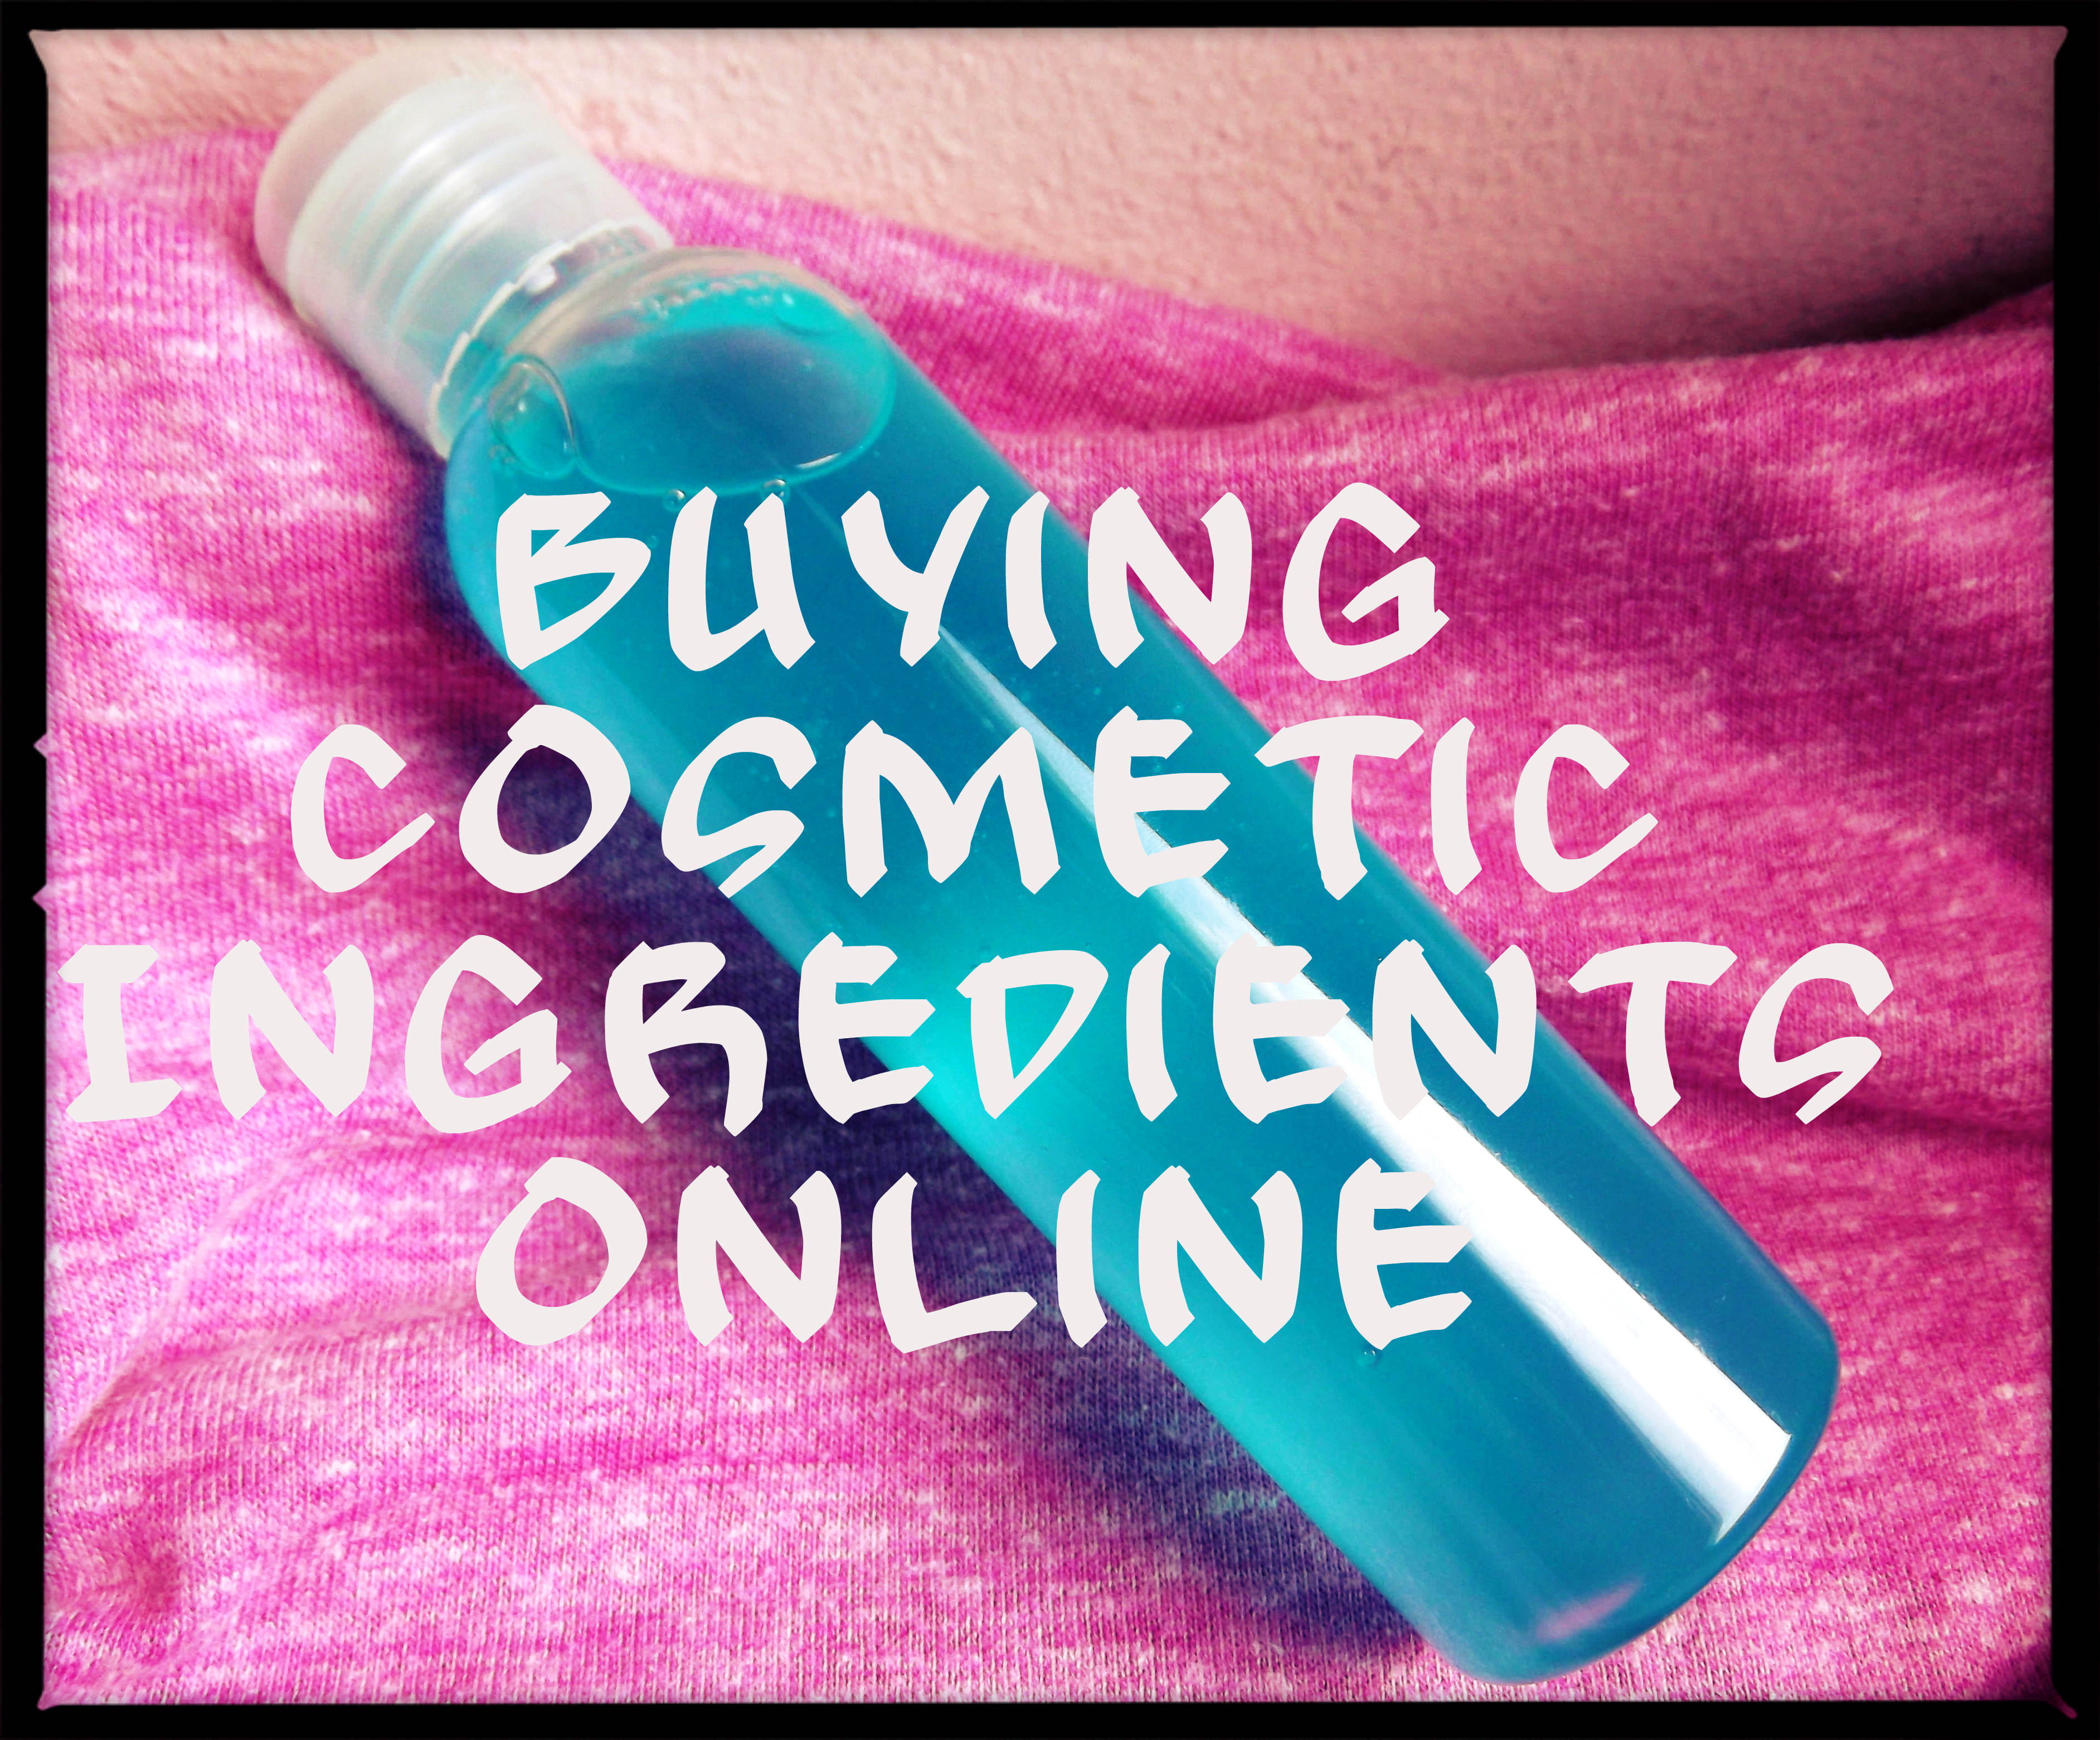 Buying online COSMETIC INGREDIENTS – It's all in my hands